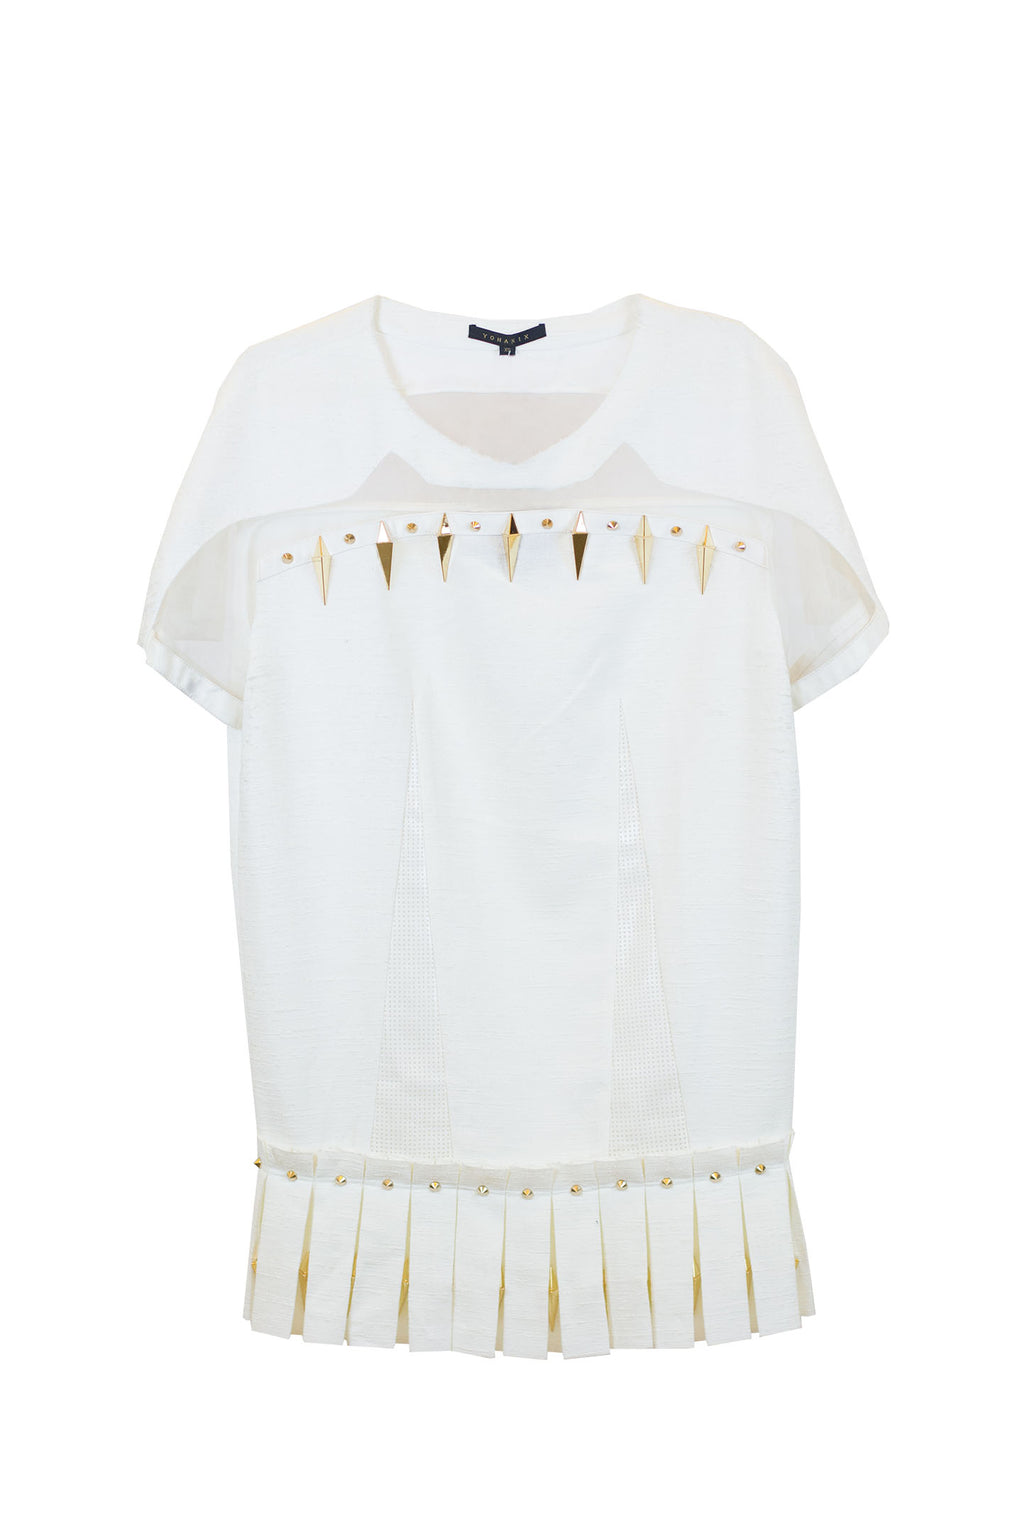 Yohan Kim - STUD MINI DRESS White